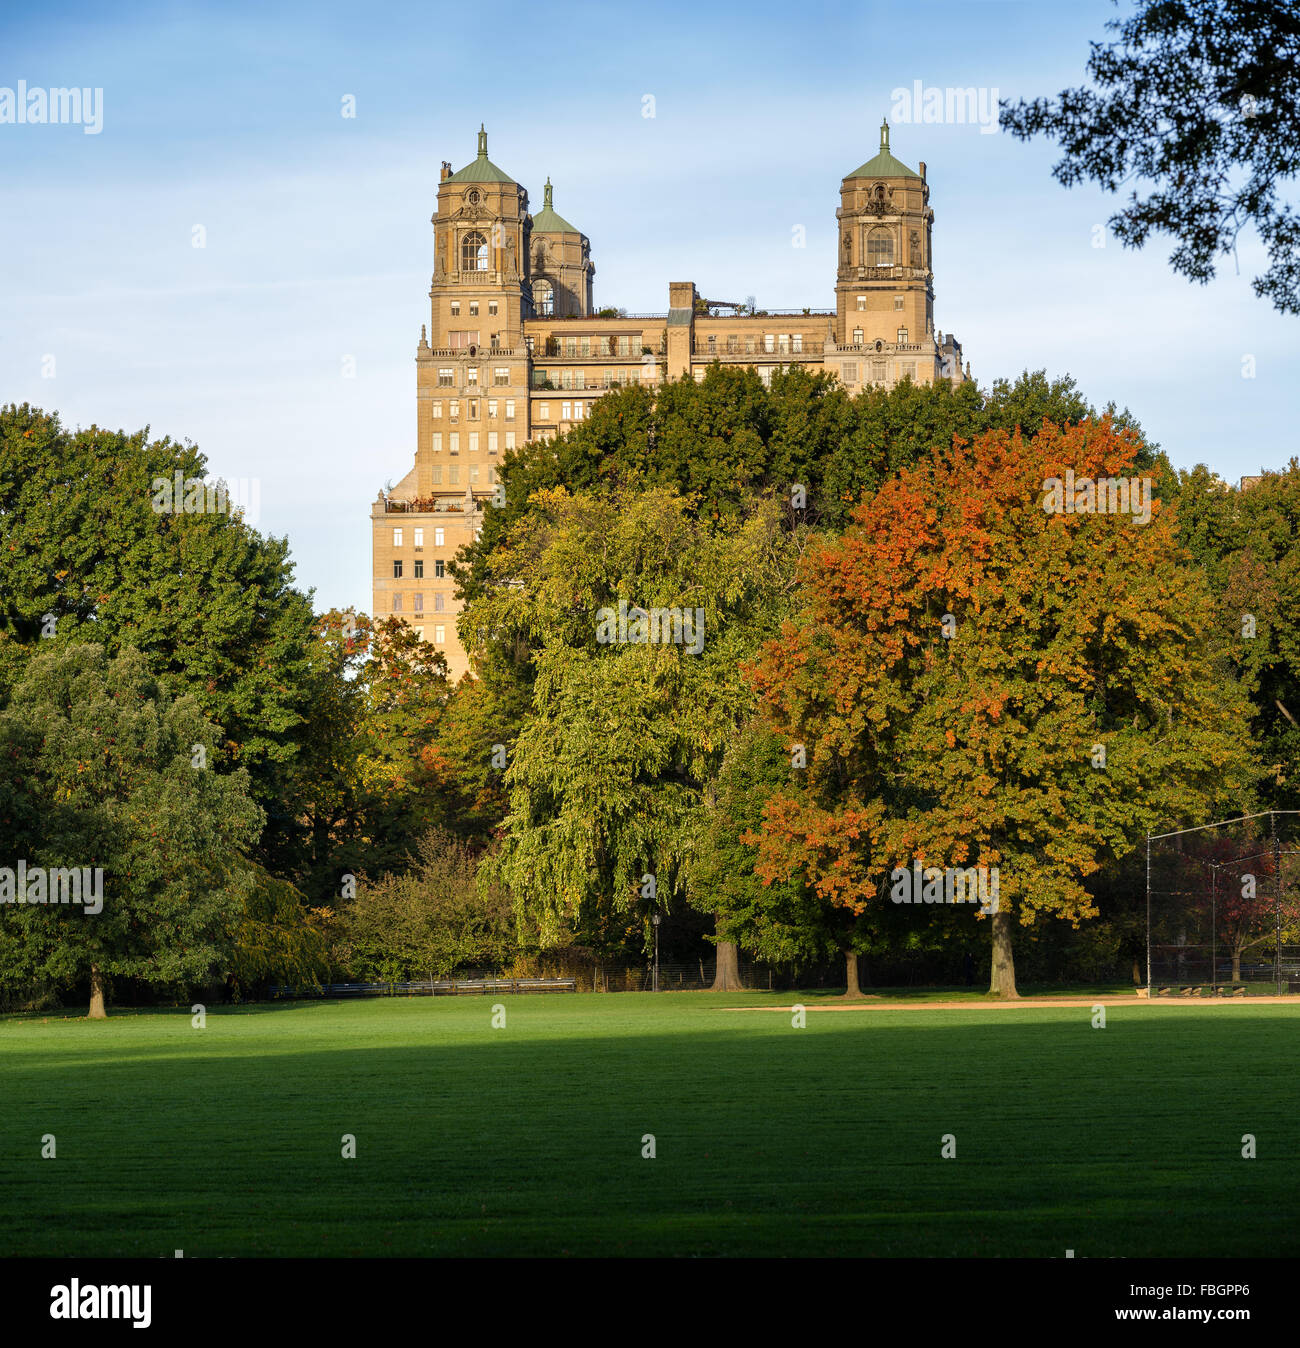 Quiet autumn view of the Beresford Building across Central Park Great Lawn in Upper West Side, Manhattan, New York - Stock Image